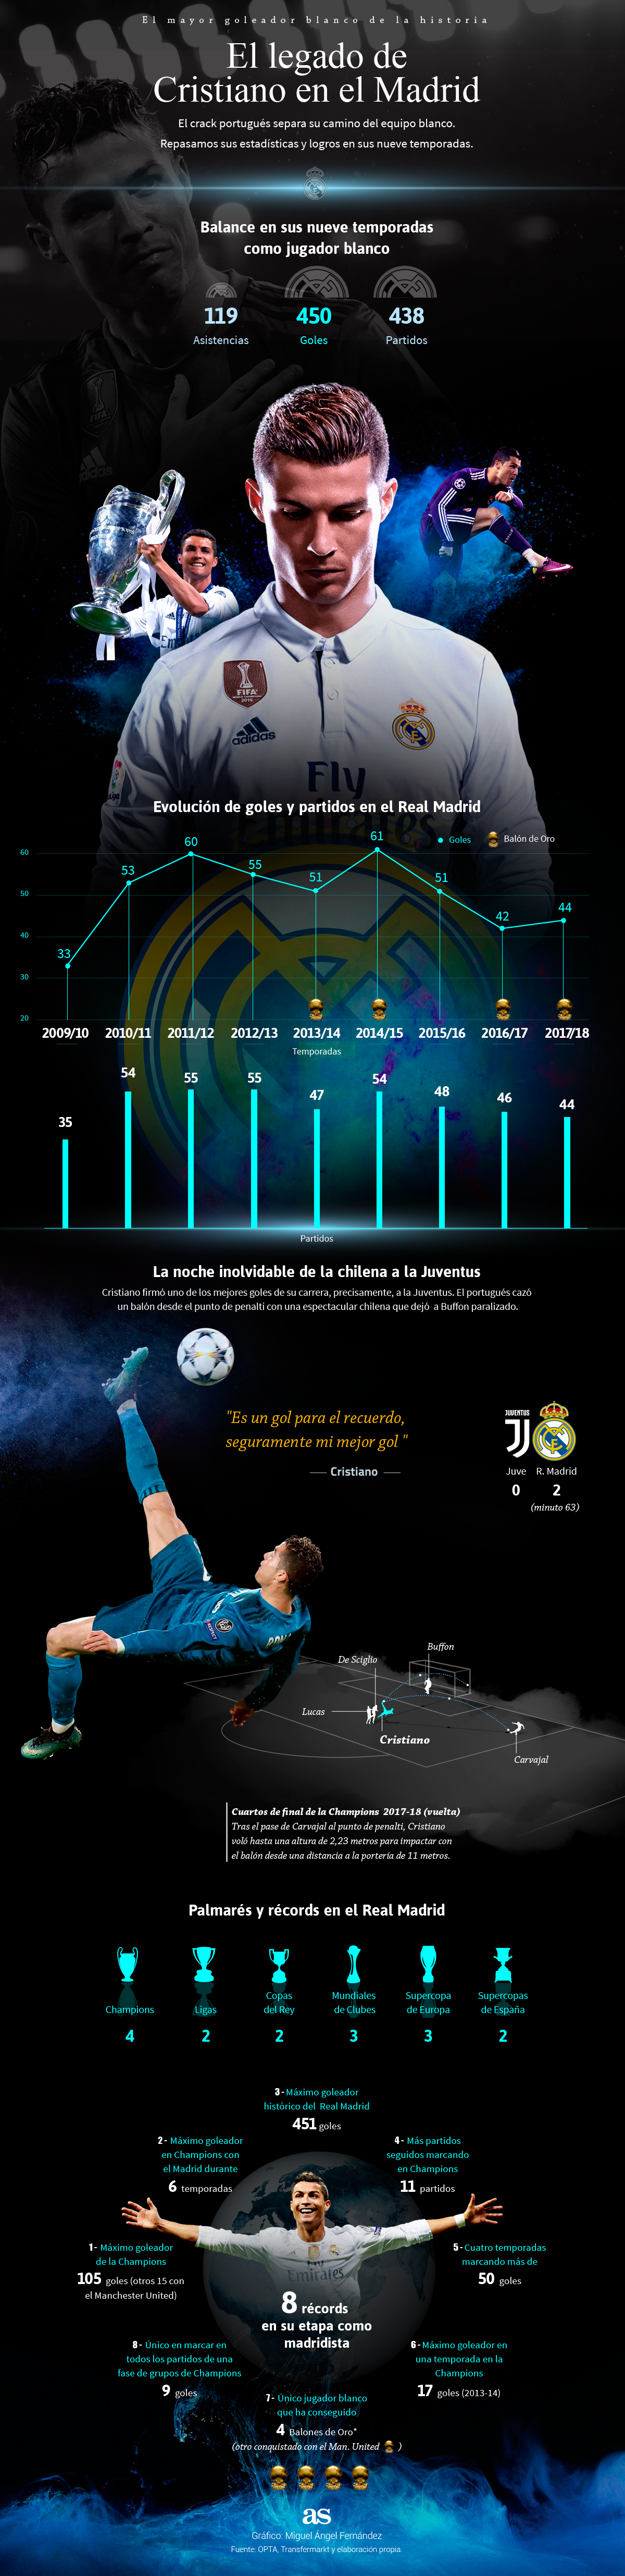 REAL MADRID 1531234381_800002_1531236814_infografia_gigante_normal